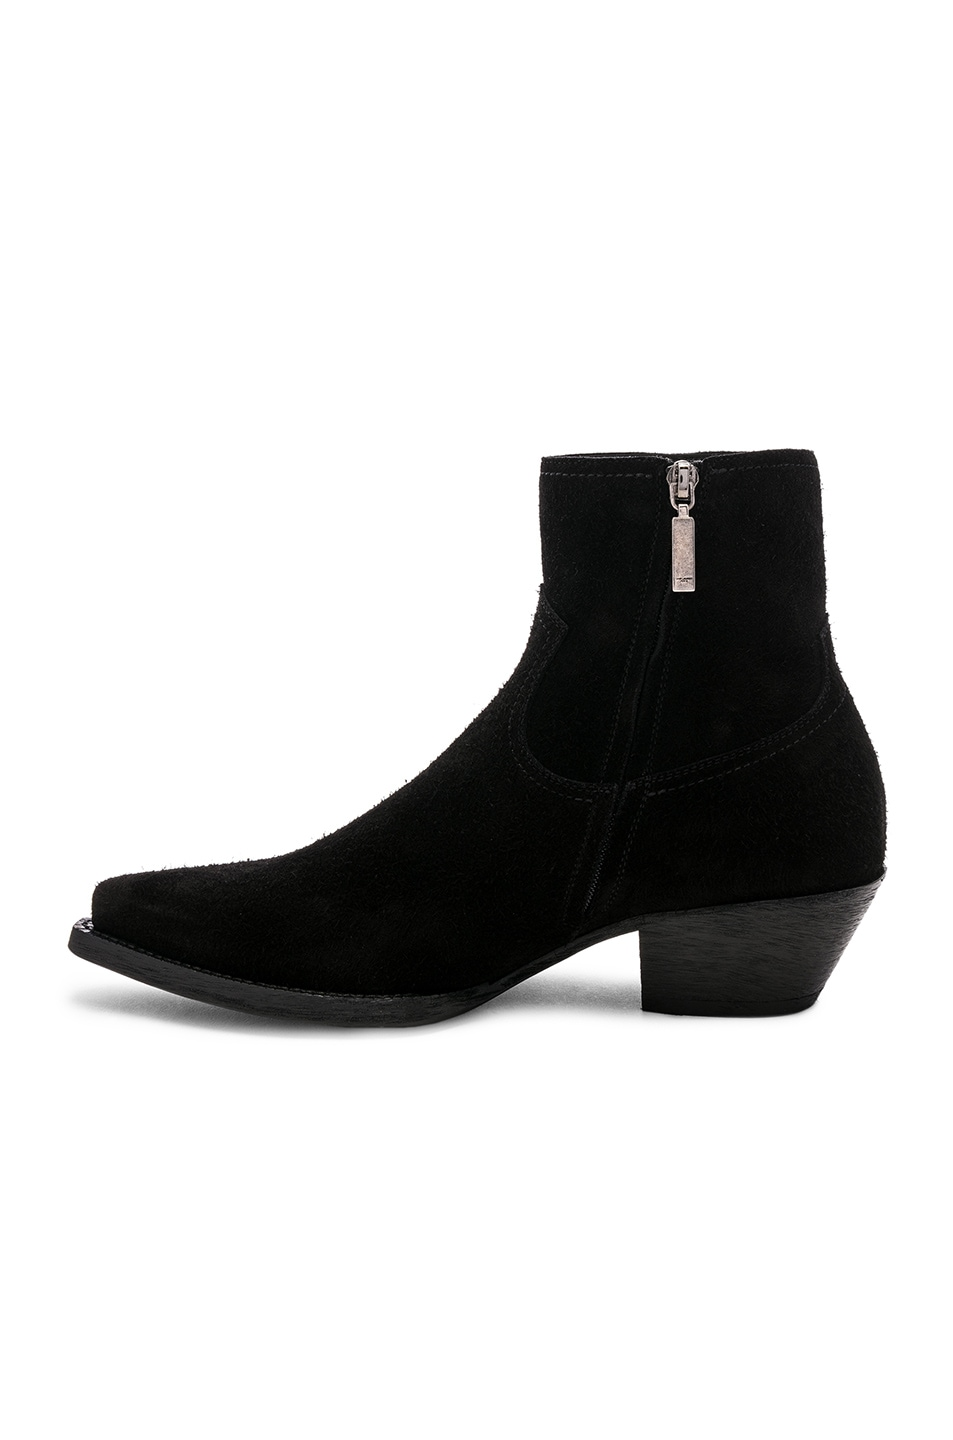 Image 5 of Saint Laurent Suede Lukas 40 Zip Boots in Black